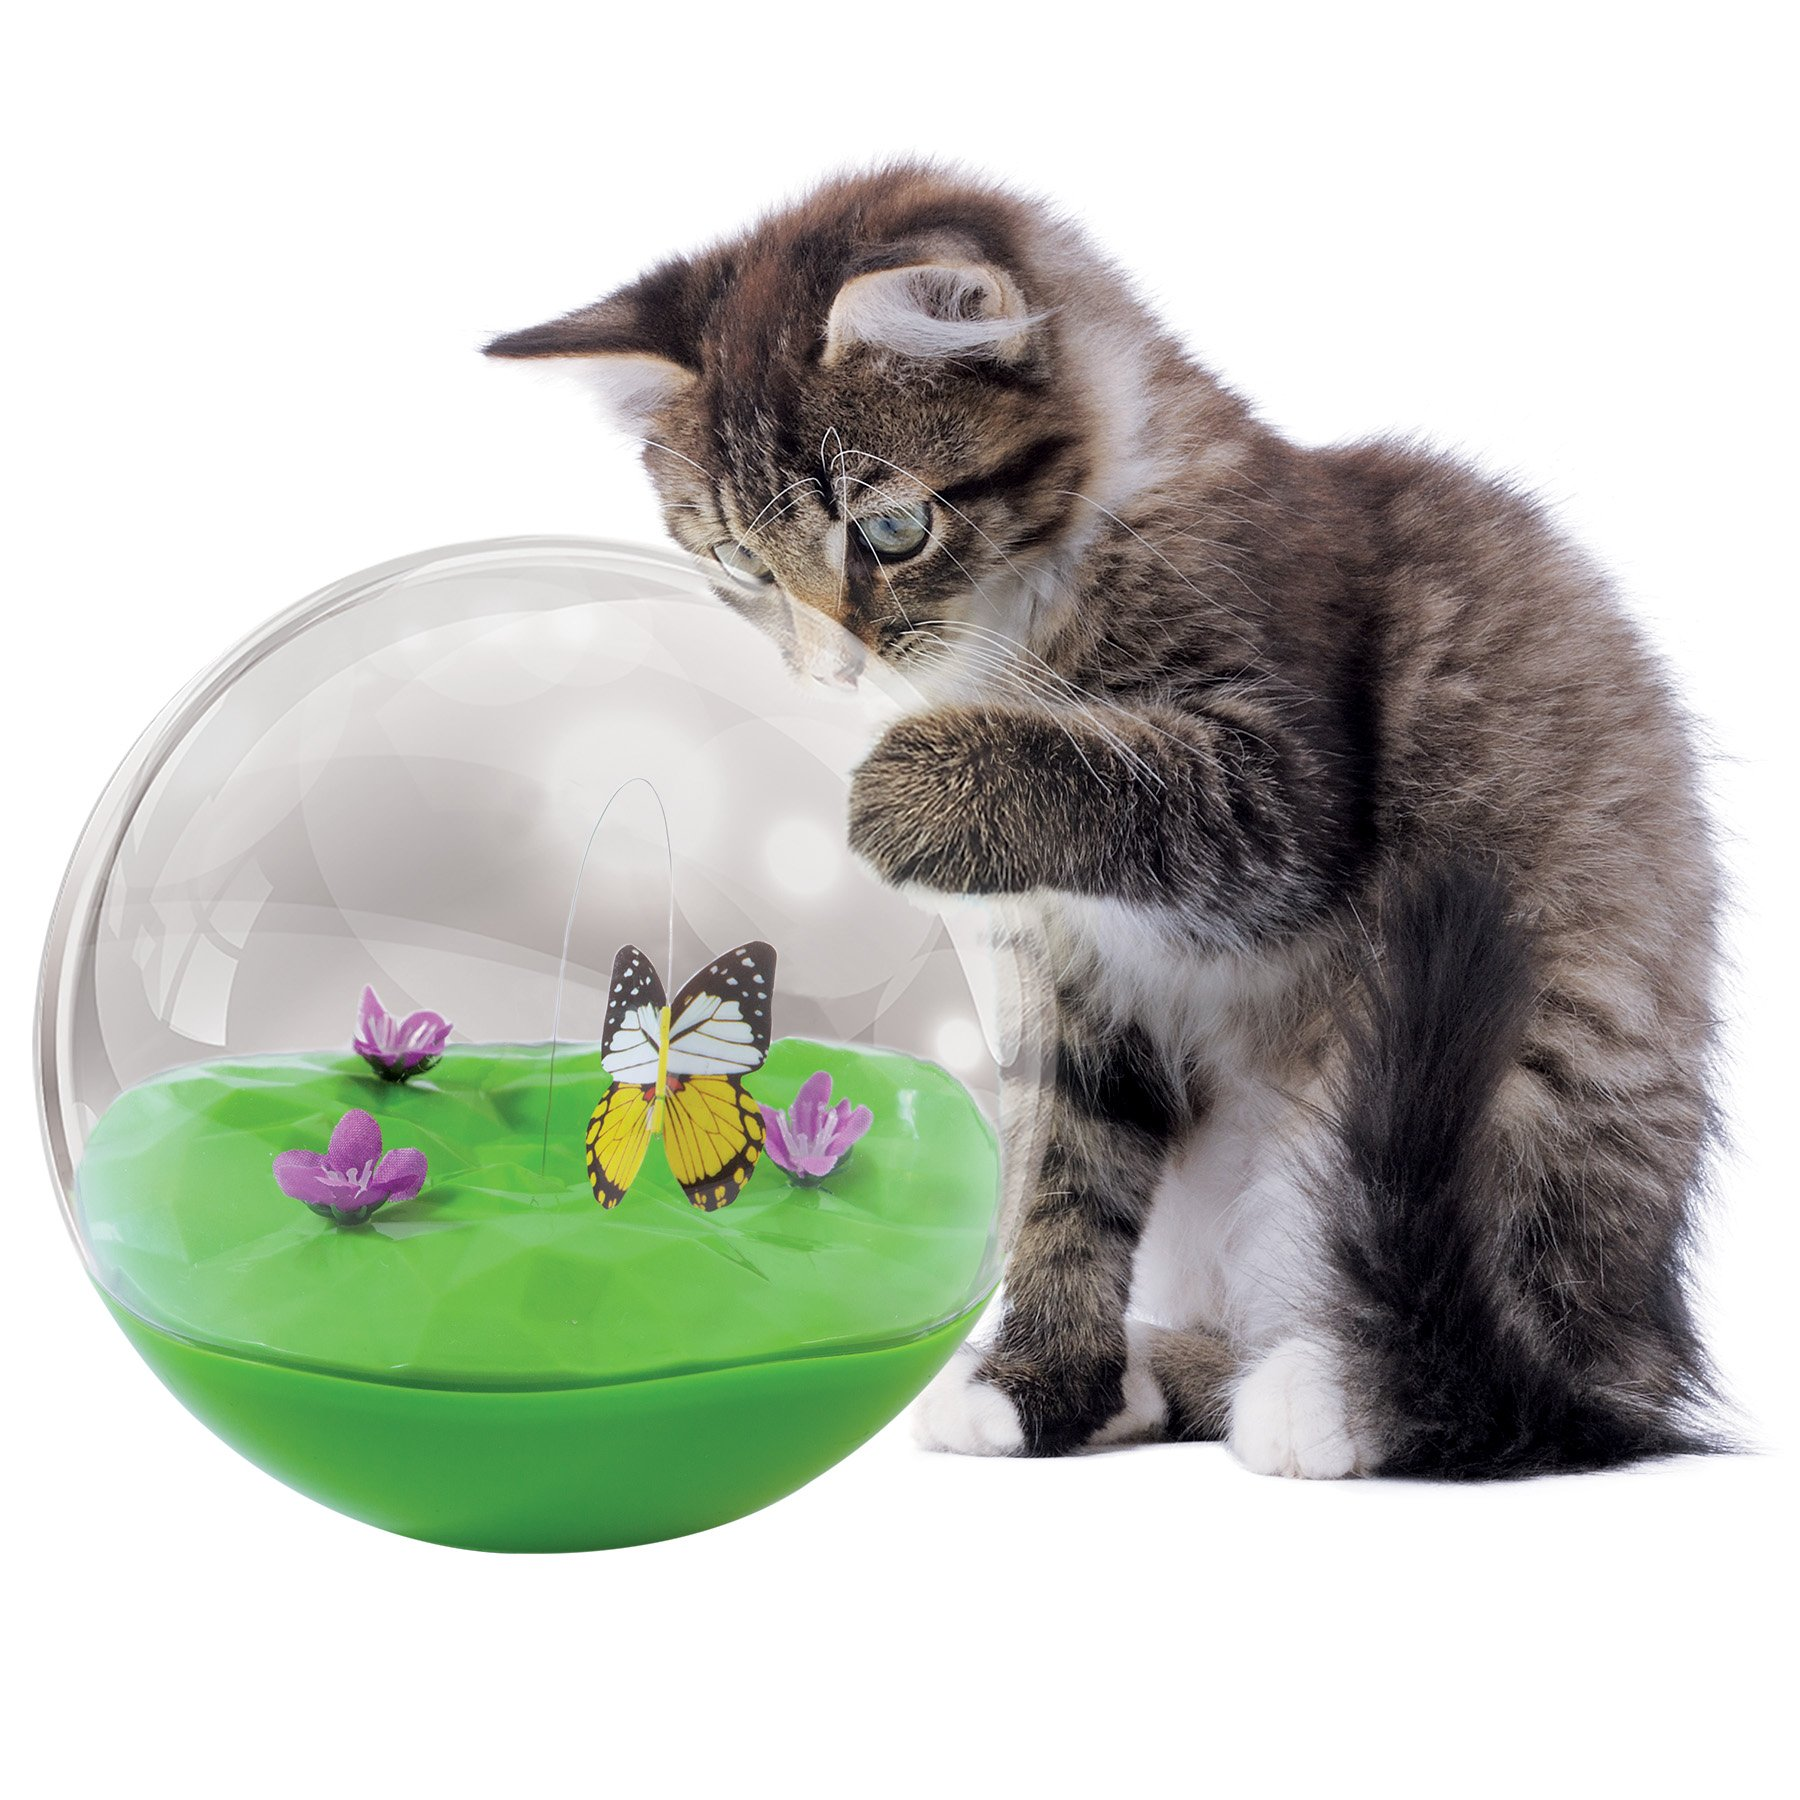 Petmate Jackson Galaxy Butterfly in a Ball Cat Toy by Petmate (Image #1)